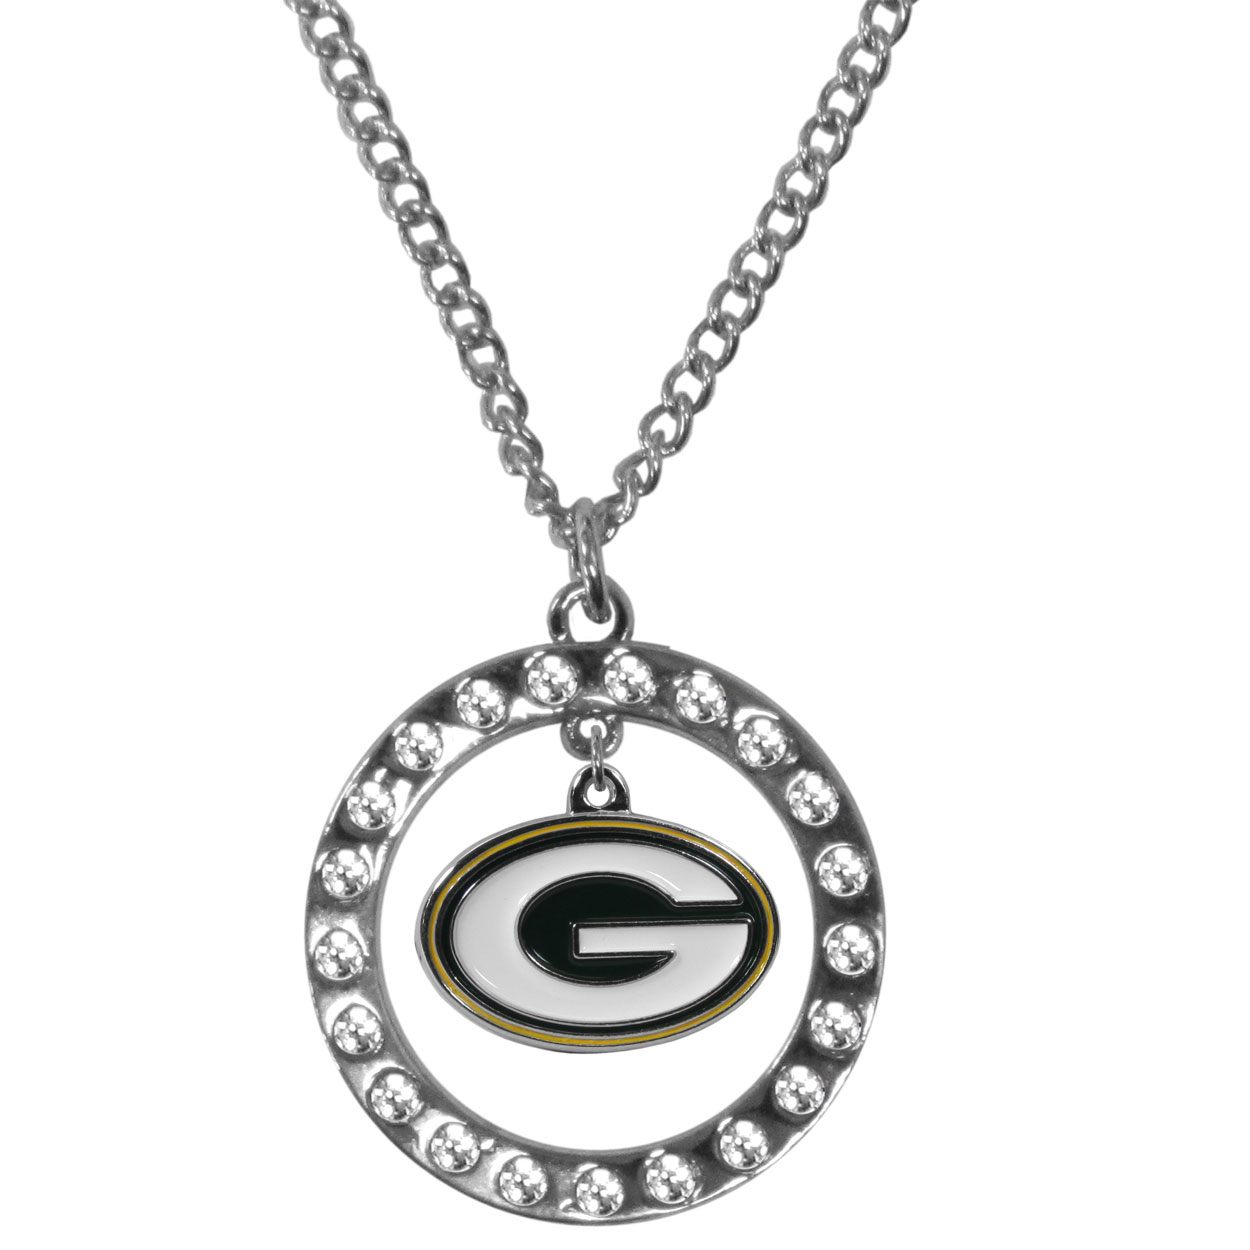 Green Bay Packers Rhinestone Hoop Necklaces - Our Green Bay Packers rhinestone hoop necklace comes on an 18 inch chain and features a hoop covered in rhinestones with a high polish chrome finish and a cast and enameled team charm dangling in the center.